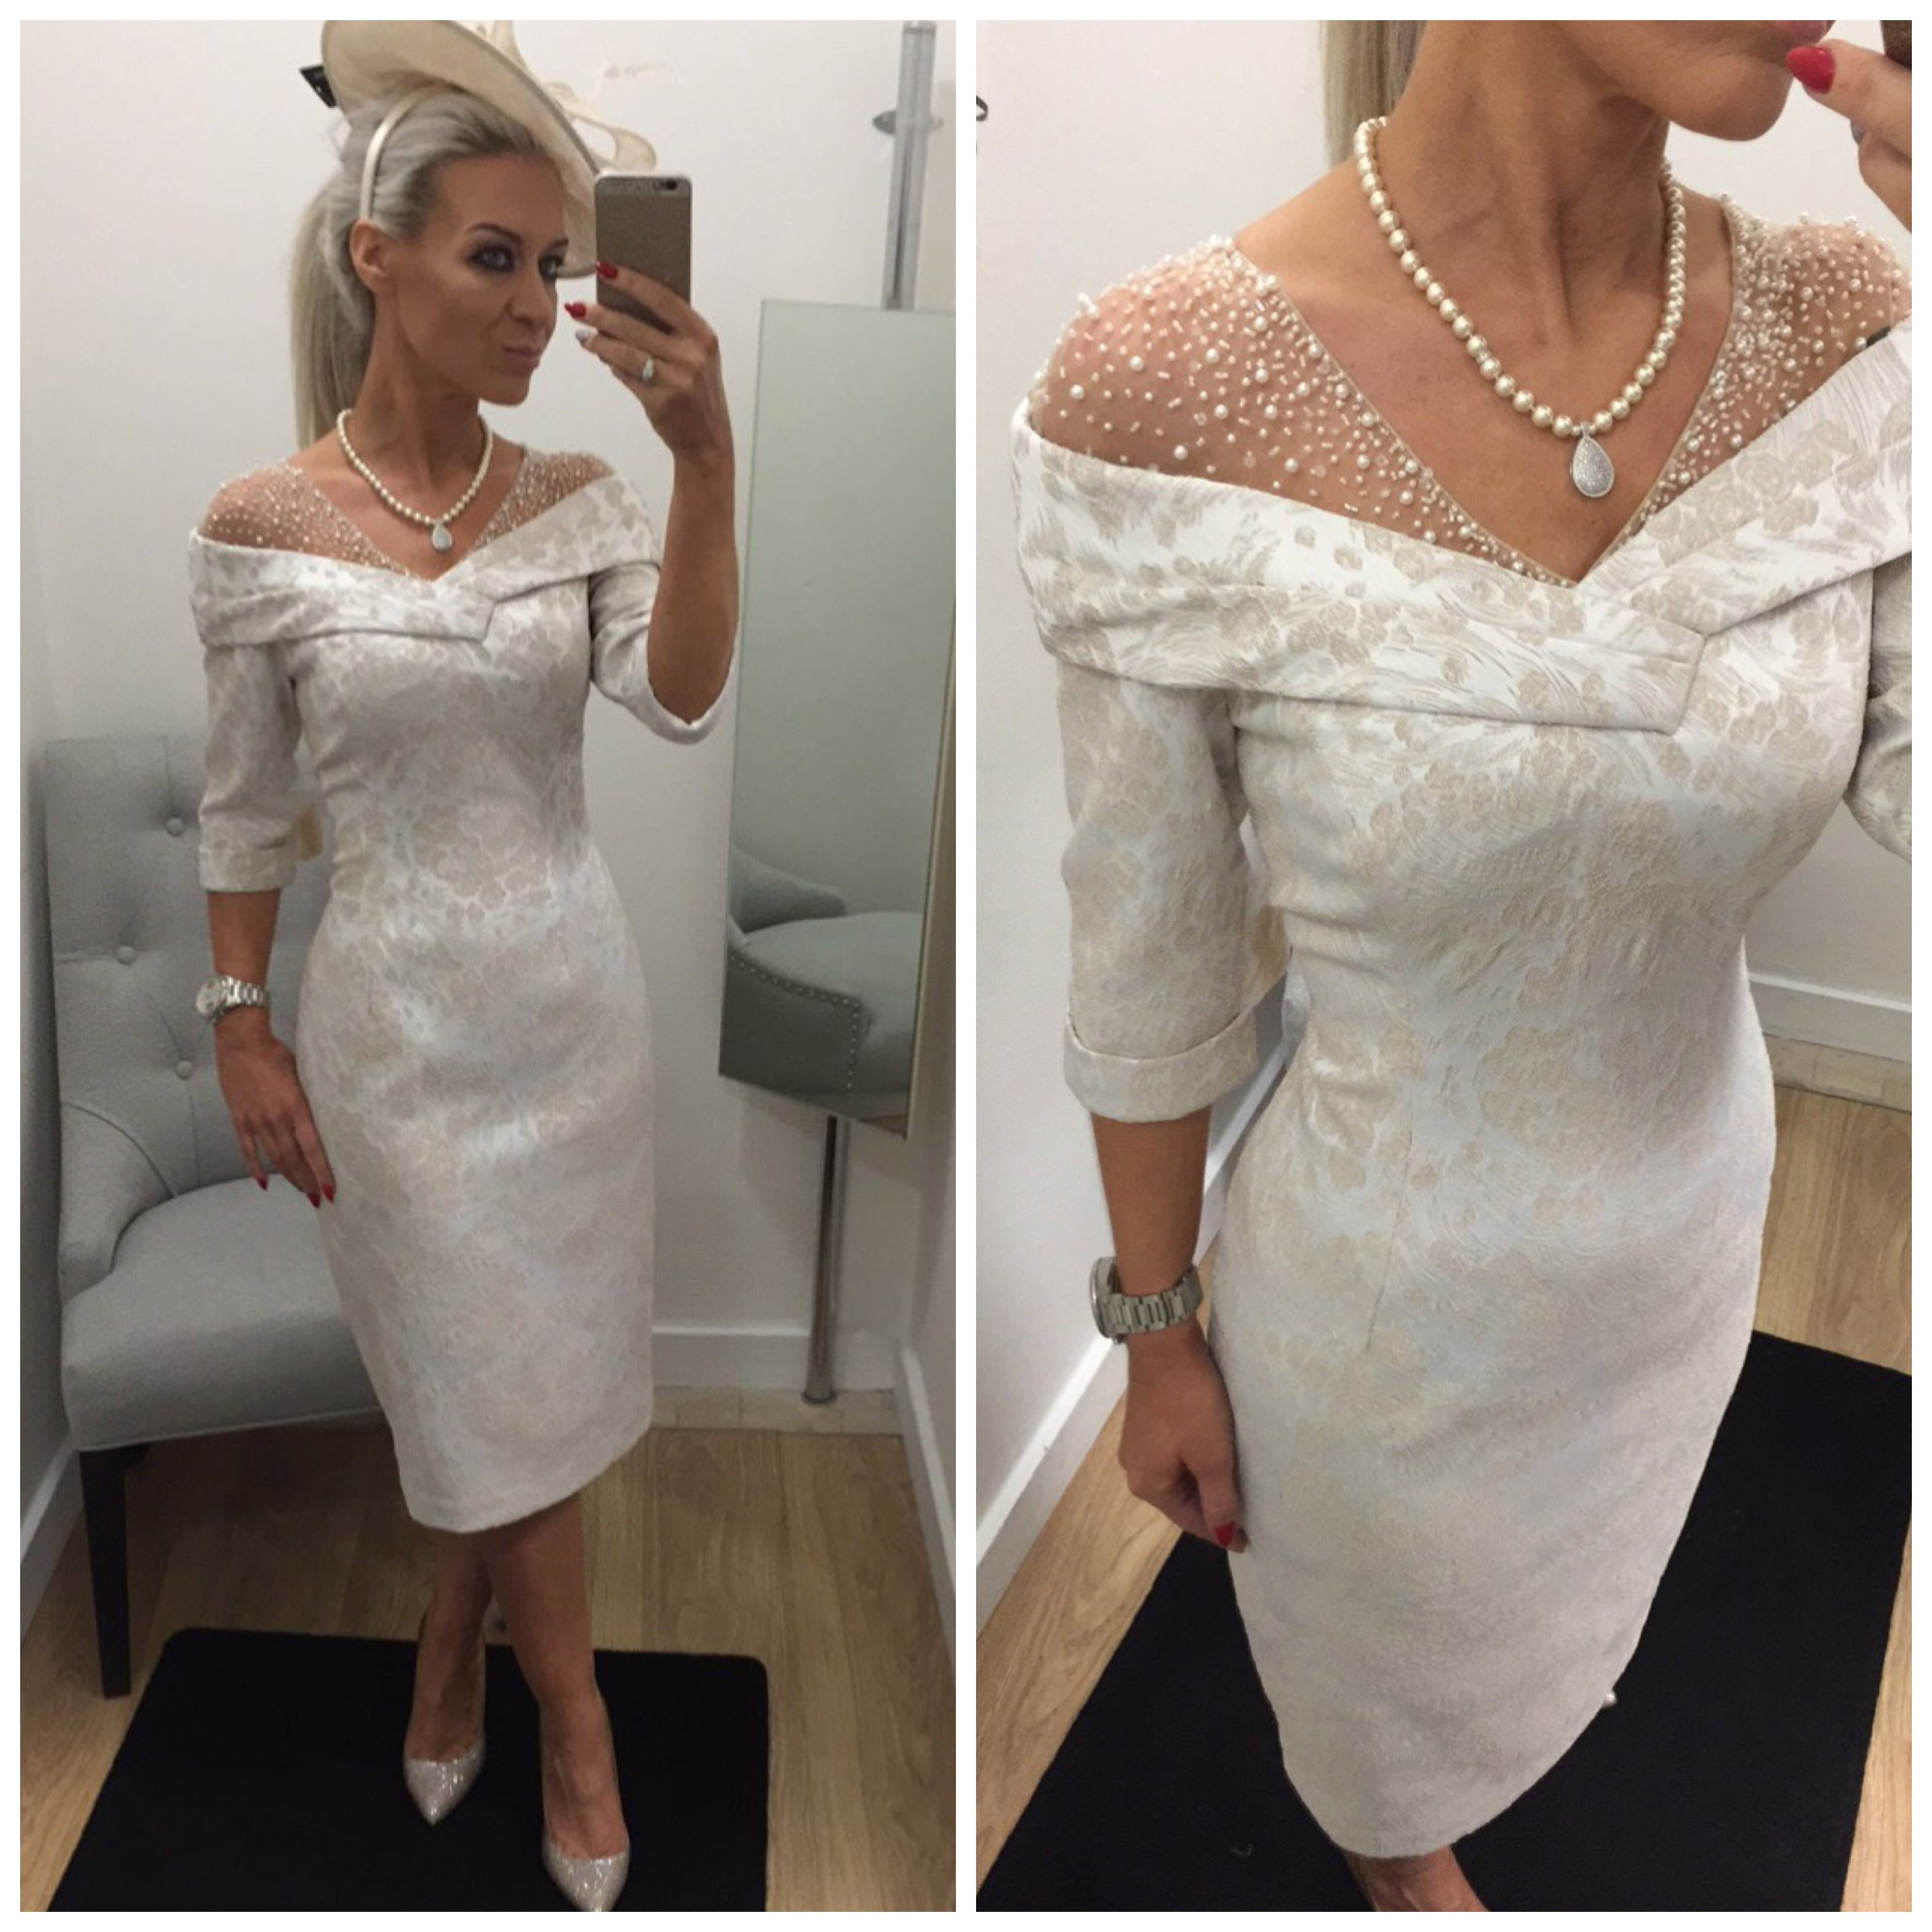 Stunning Mother Of The Bride Dresses: Stunning Mother Of The Bride Outfits In Ballyclare